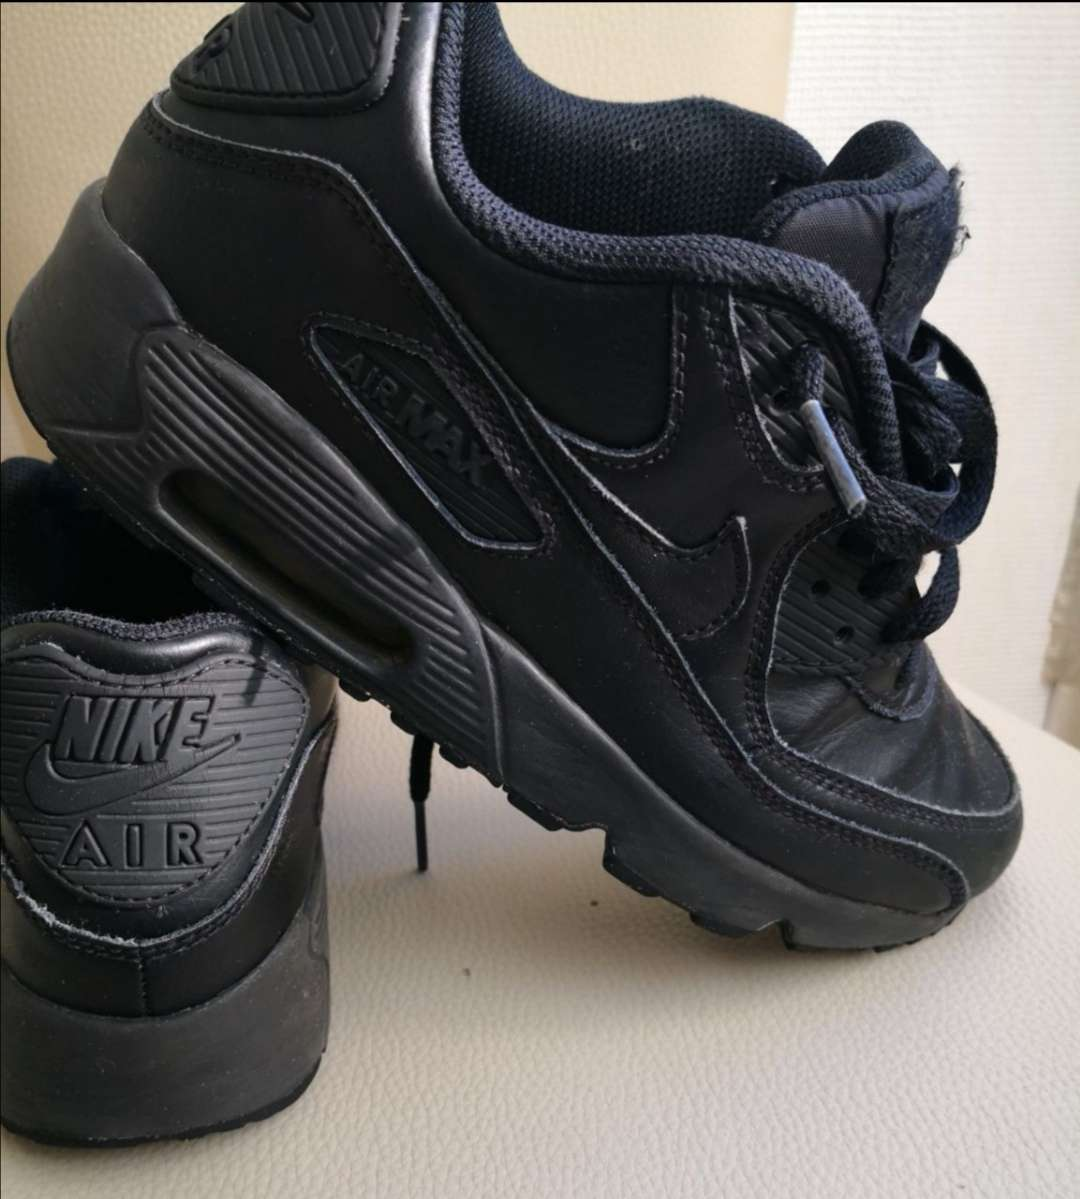 Imagen producto NIKE AIR MAX, unisex, talla 36 5